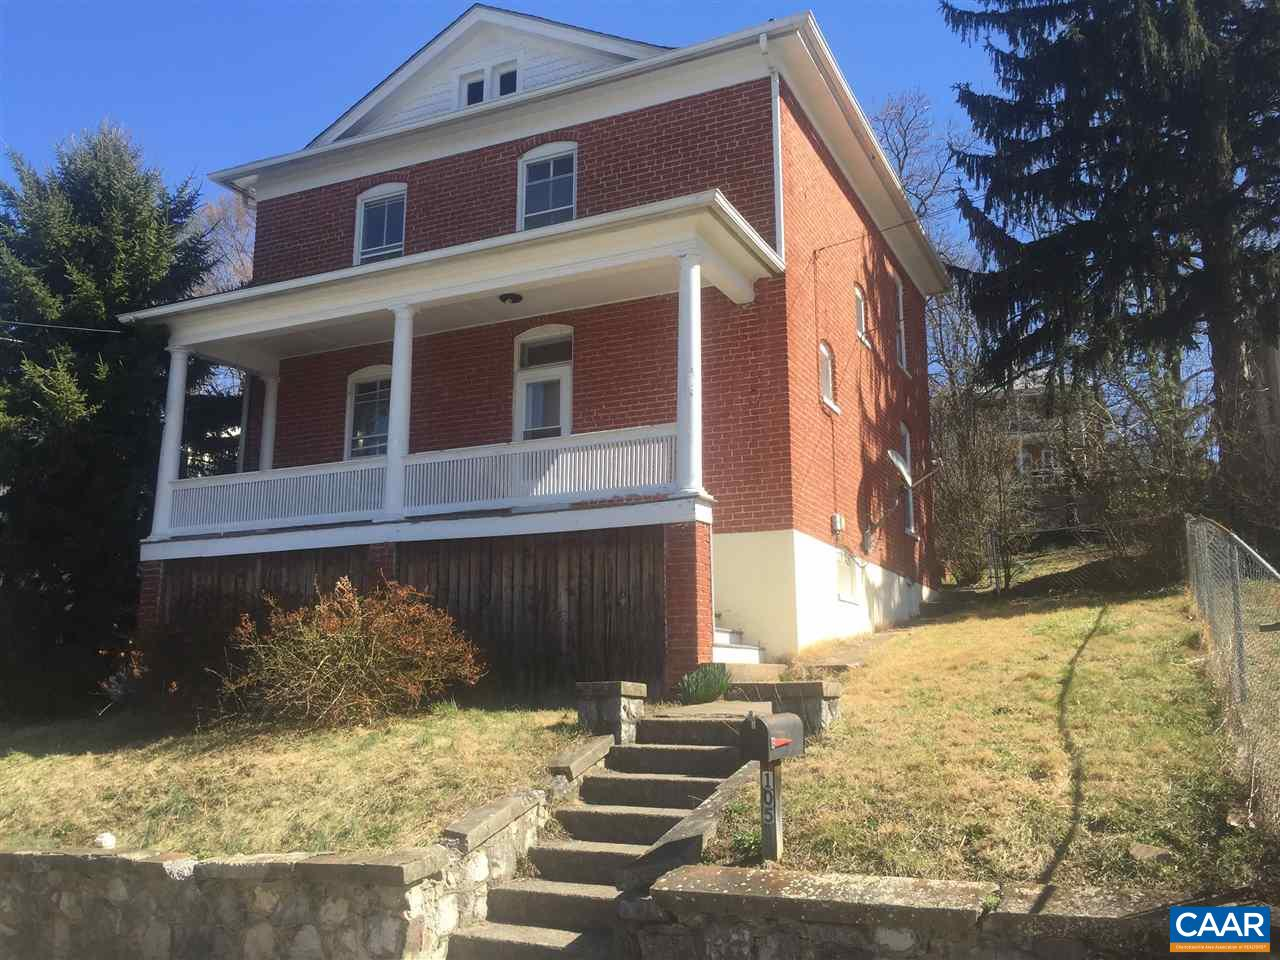 home for sale , MLS #575359, 105 Lake Ave